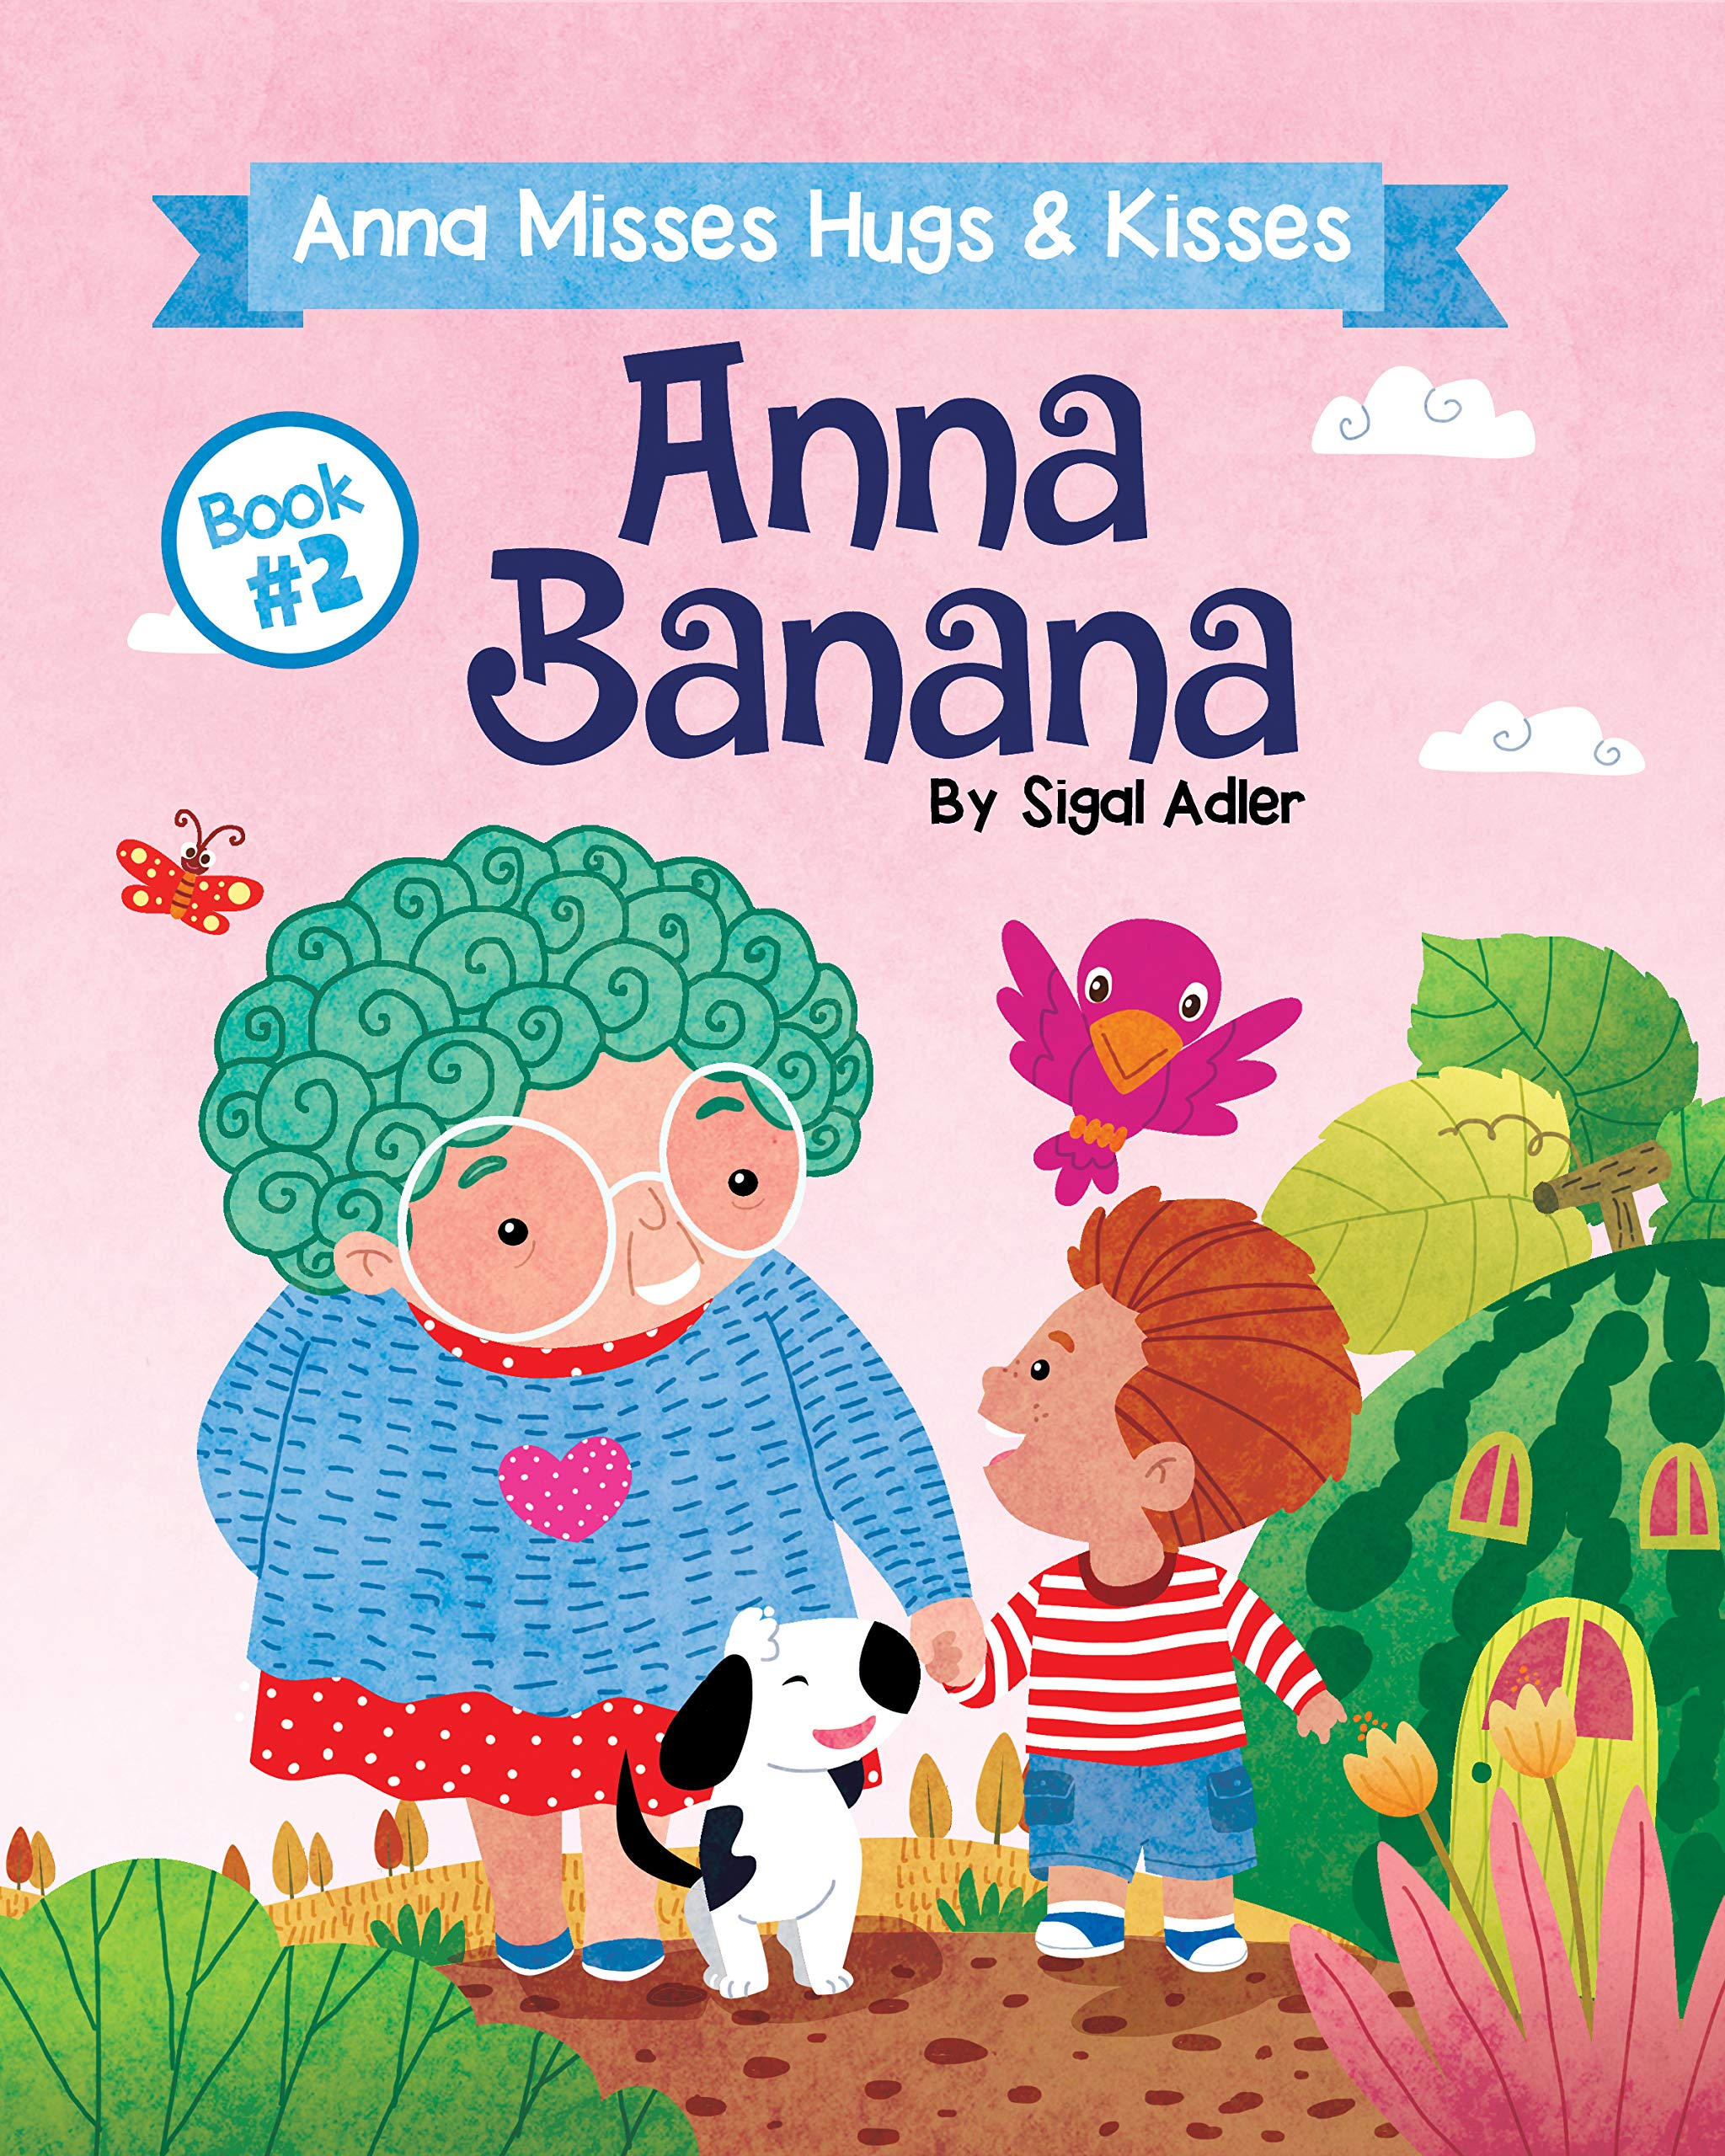 ANNA BANANA - Anna Misses Hugs & Kisses: Funny Rhyming Picture Books (Children's books for preschool kid Book 2)